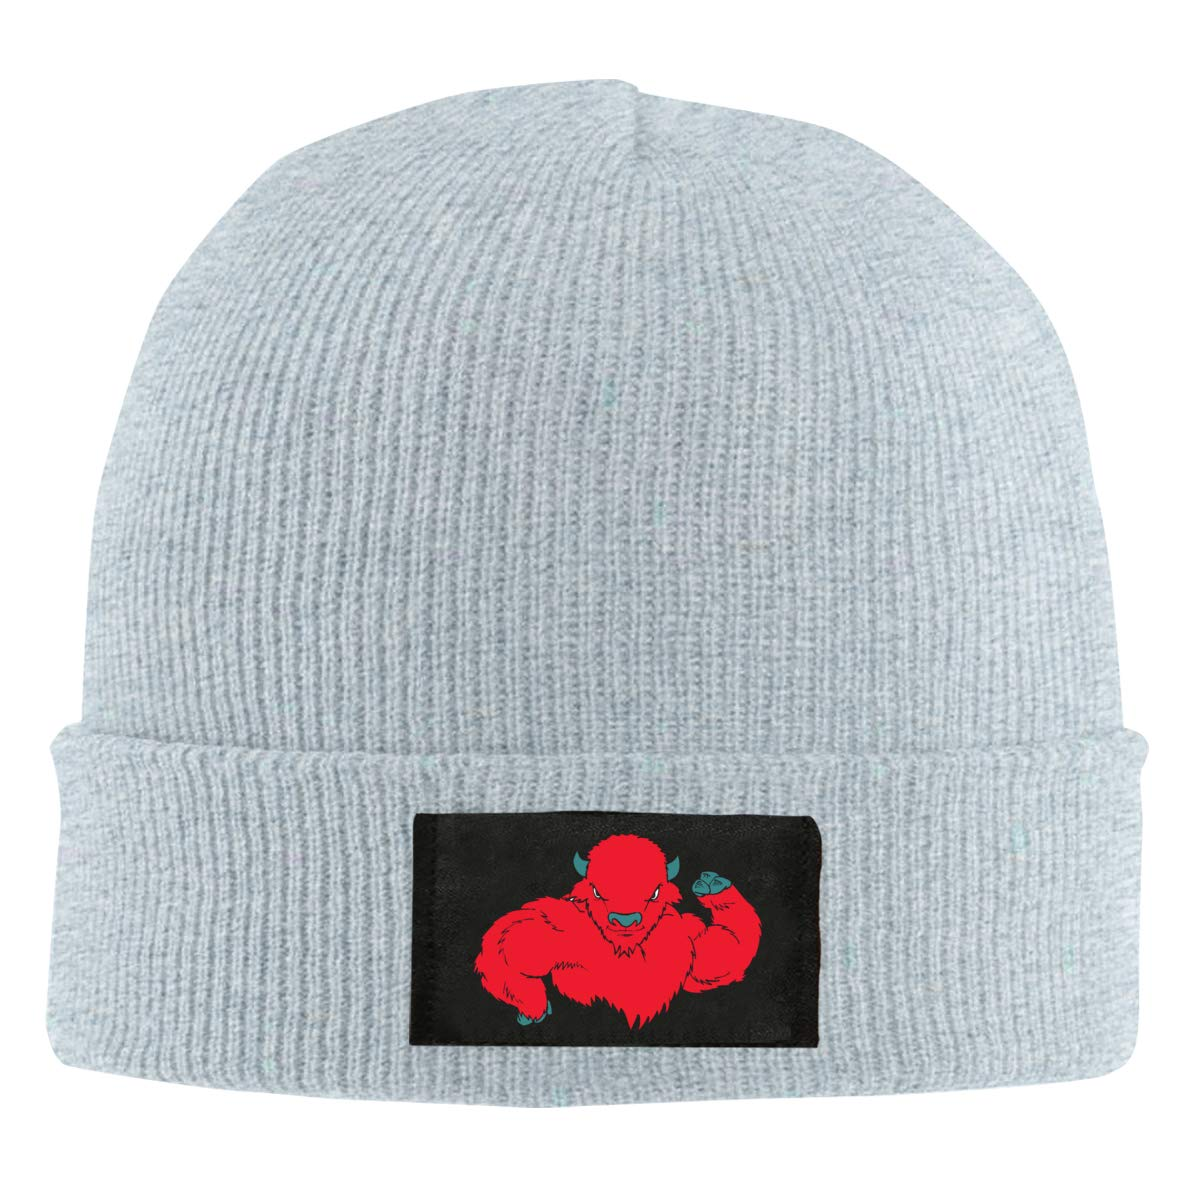 Amazon.com  Red Muscle Buffalo Wool Knit Hat Beanie Caps Unisex Slouchy  Winter  Clothing d7e38a47a